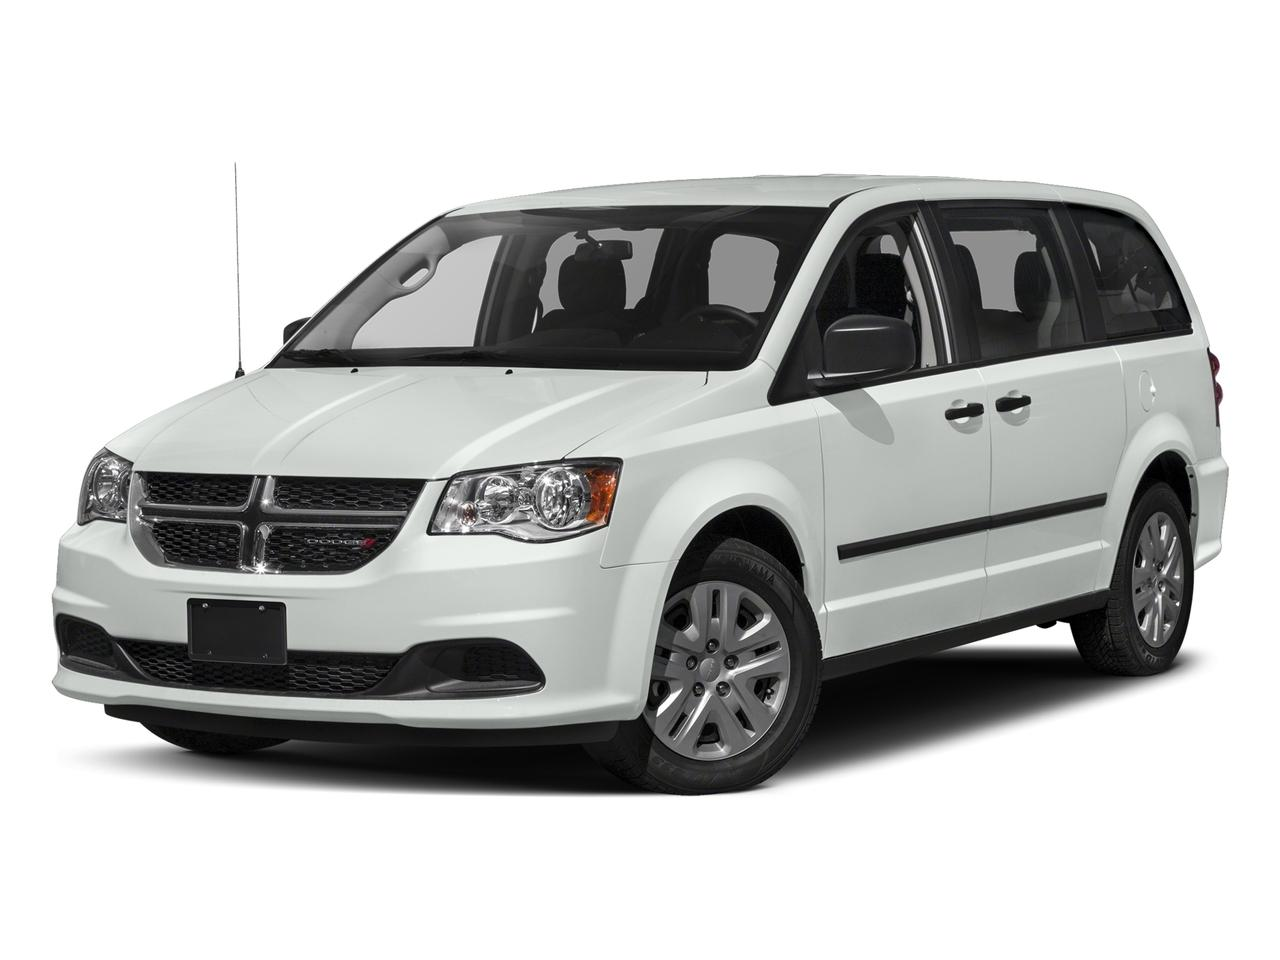 2016 Dodge Grand Caravan Vehicle Photo in Brockton, MA 02301